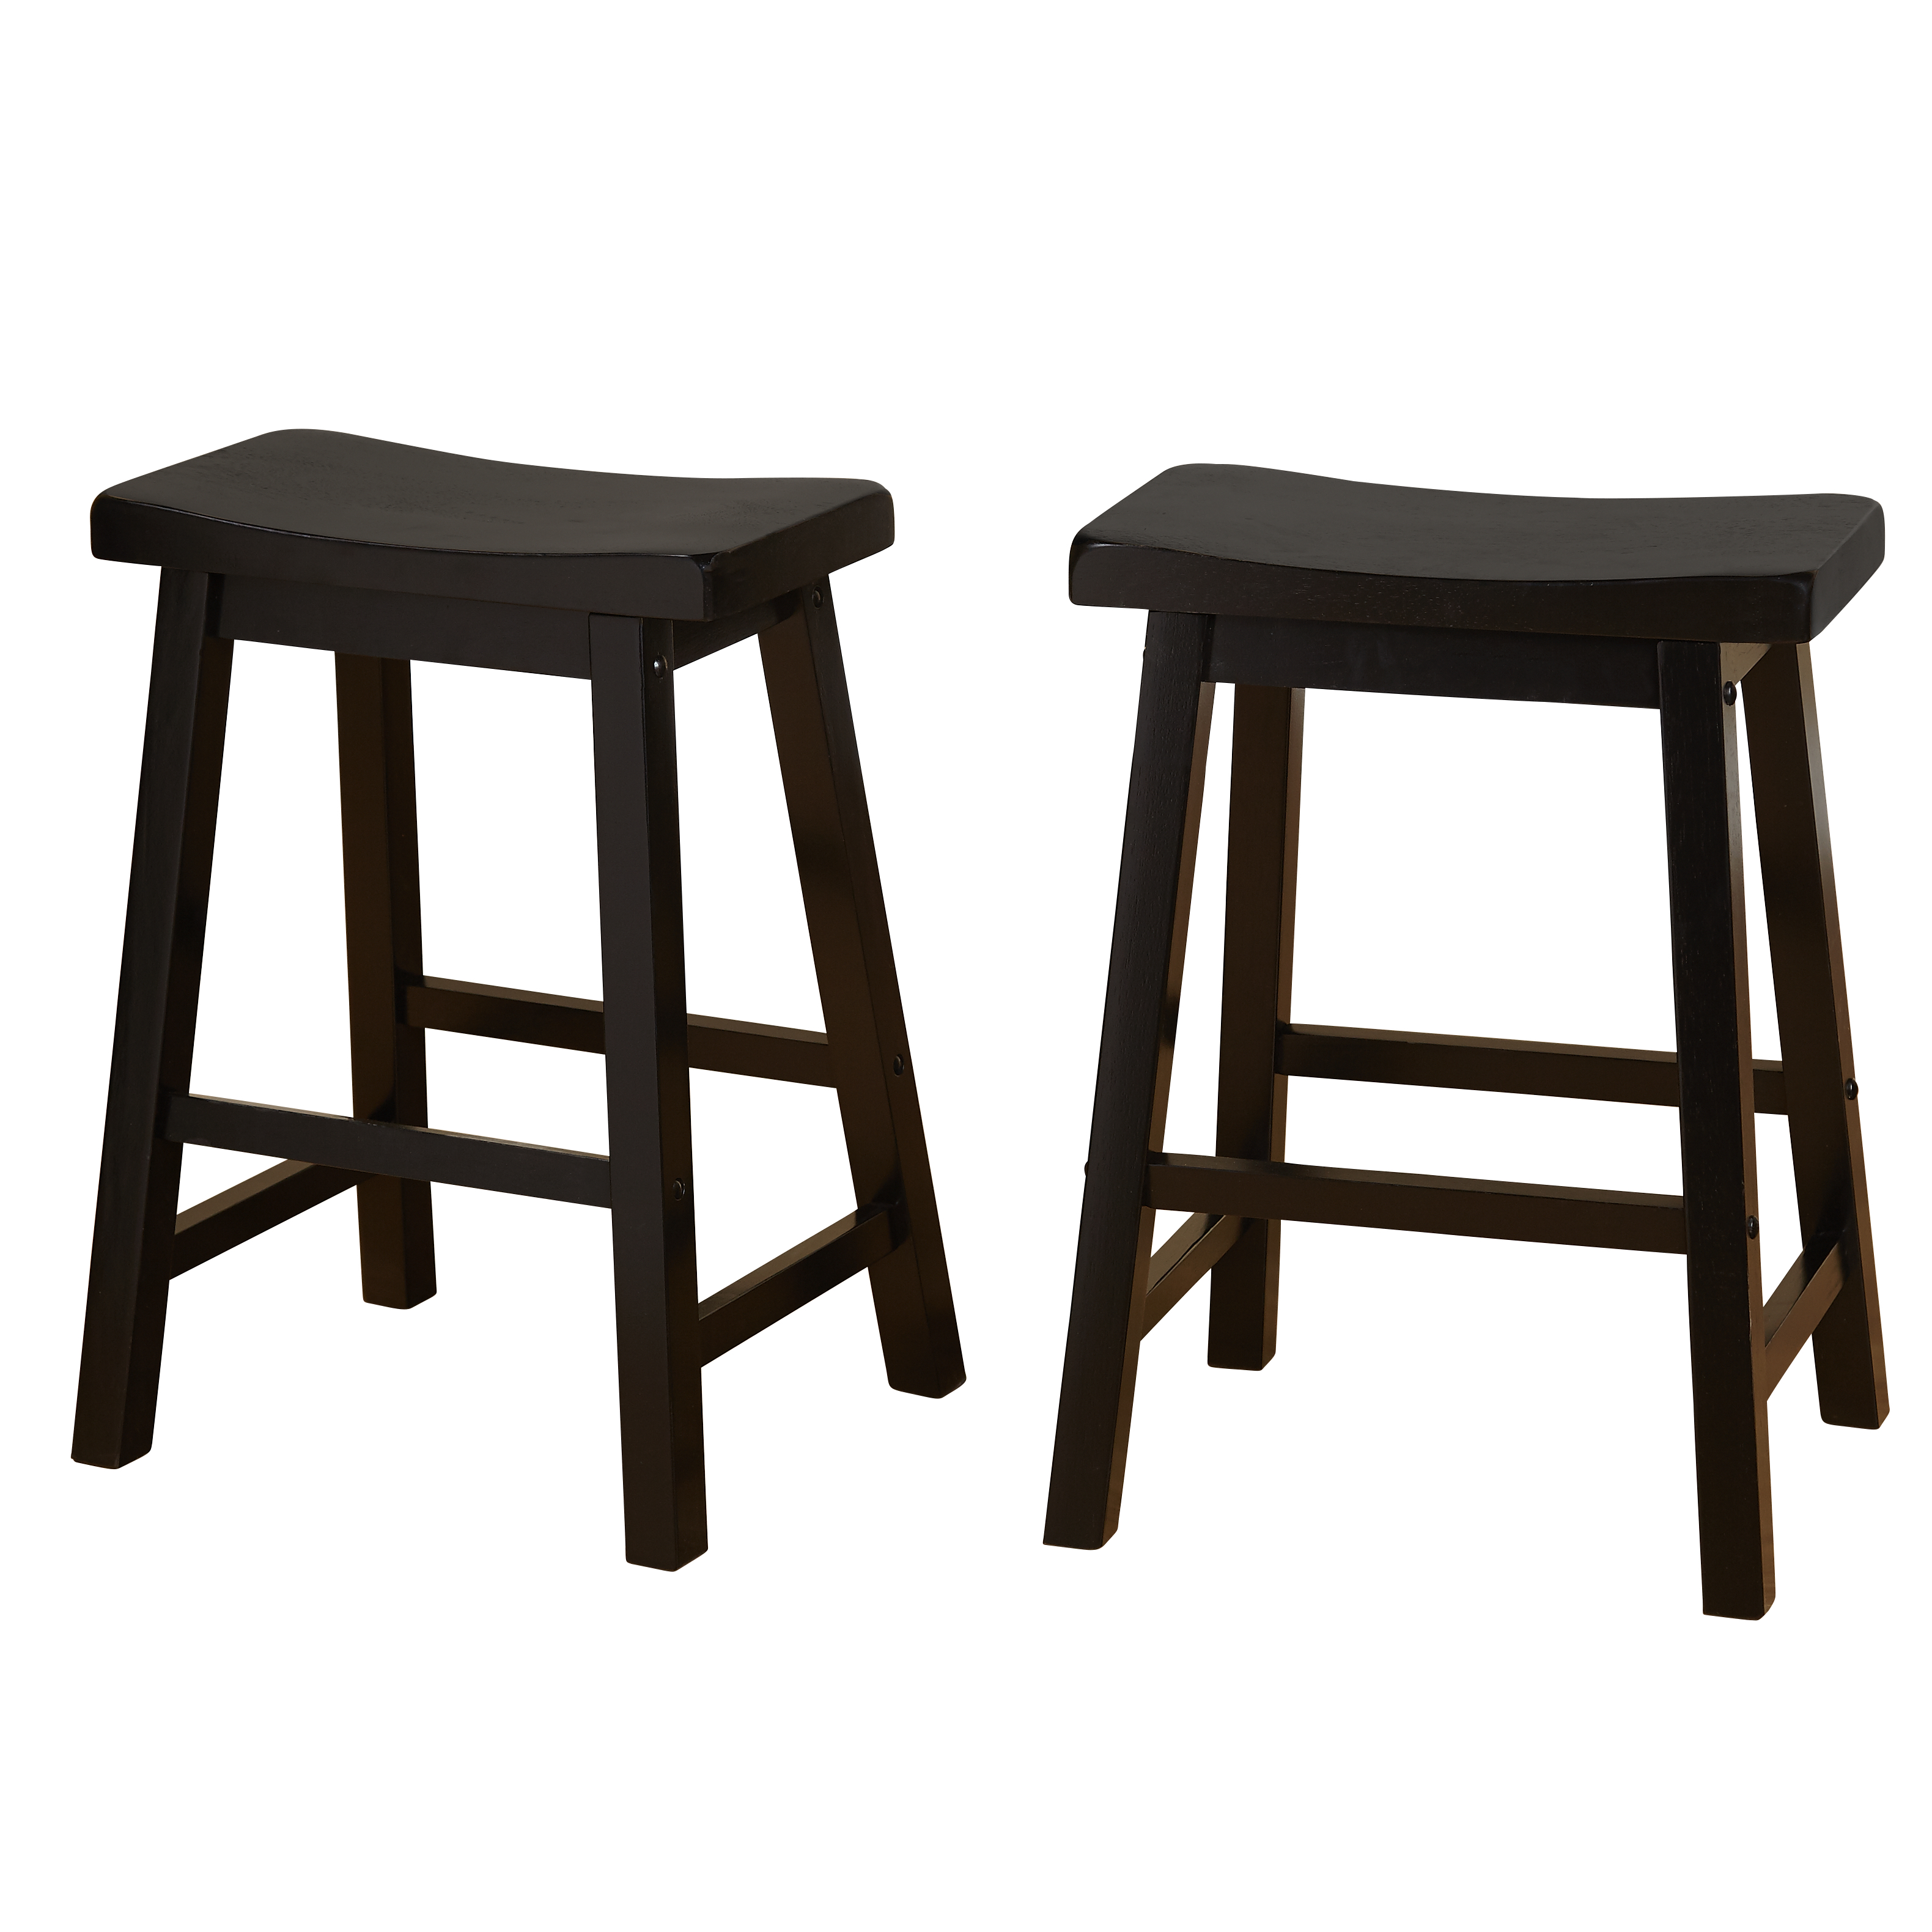 "Belfast Saddle 24"" Stools, Set of 2, Multiple Colors"